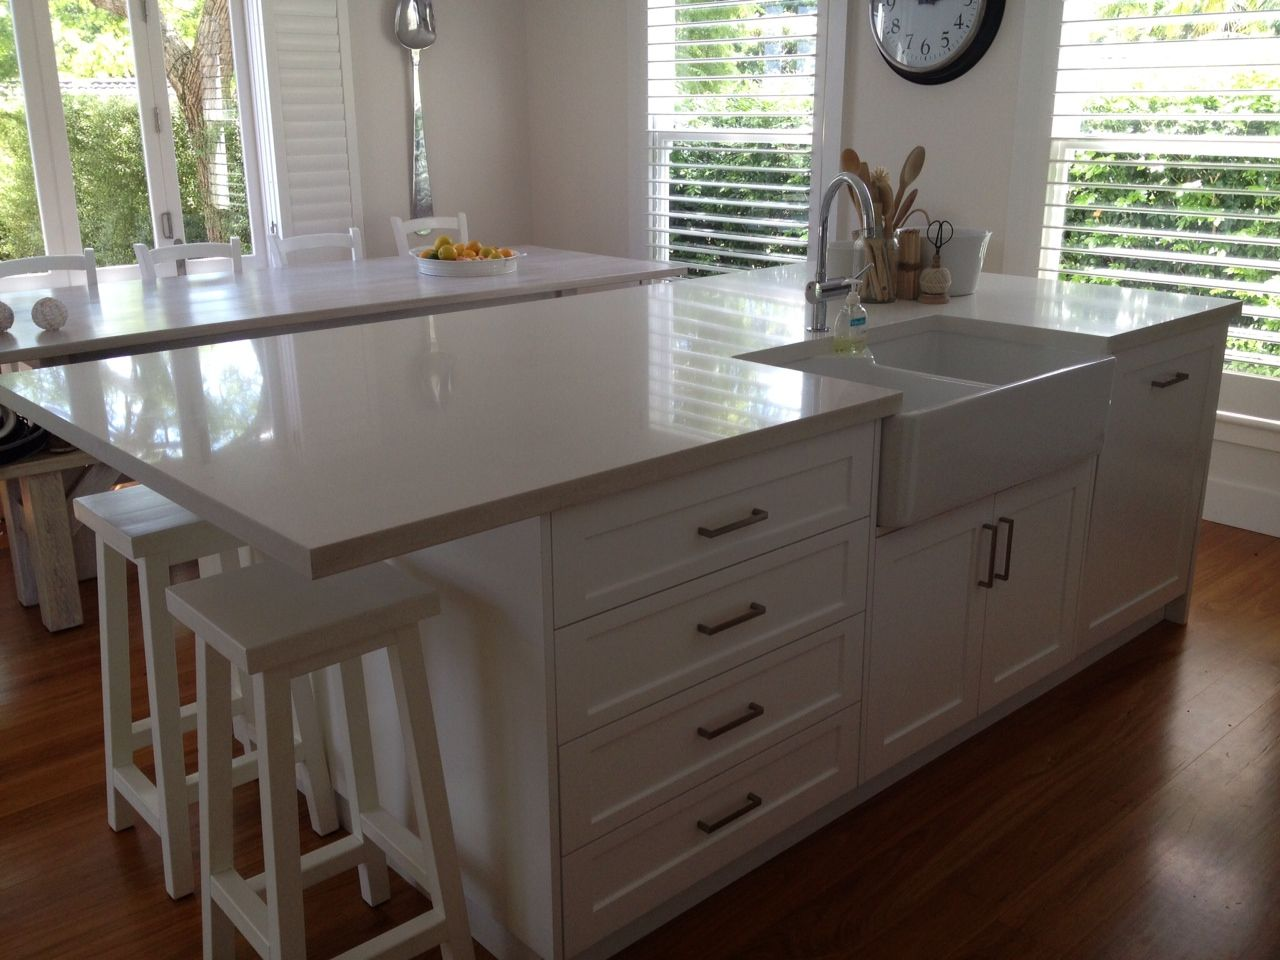 Kitchen Island With Sink And Seating Butler Sink Kitchen: kitchen island with sink and seating